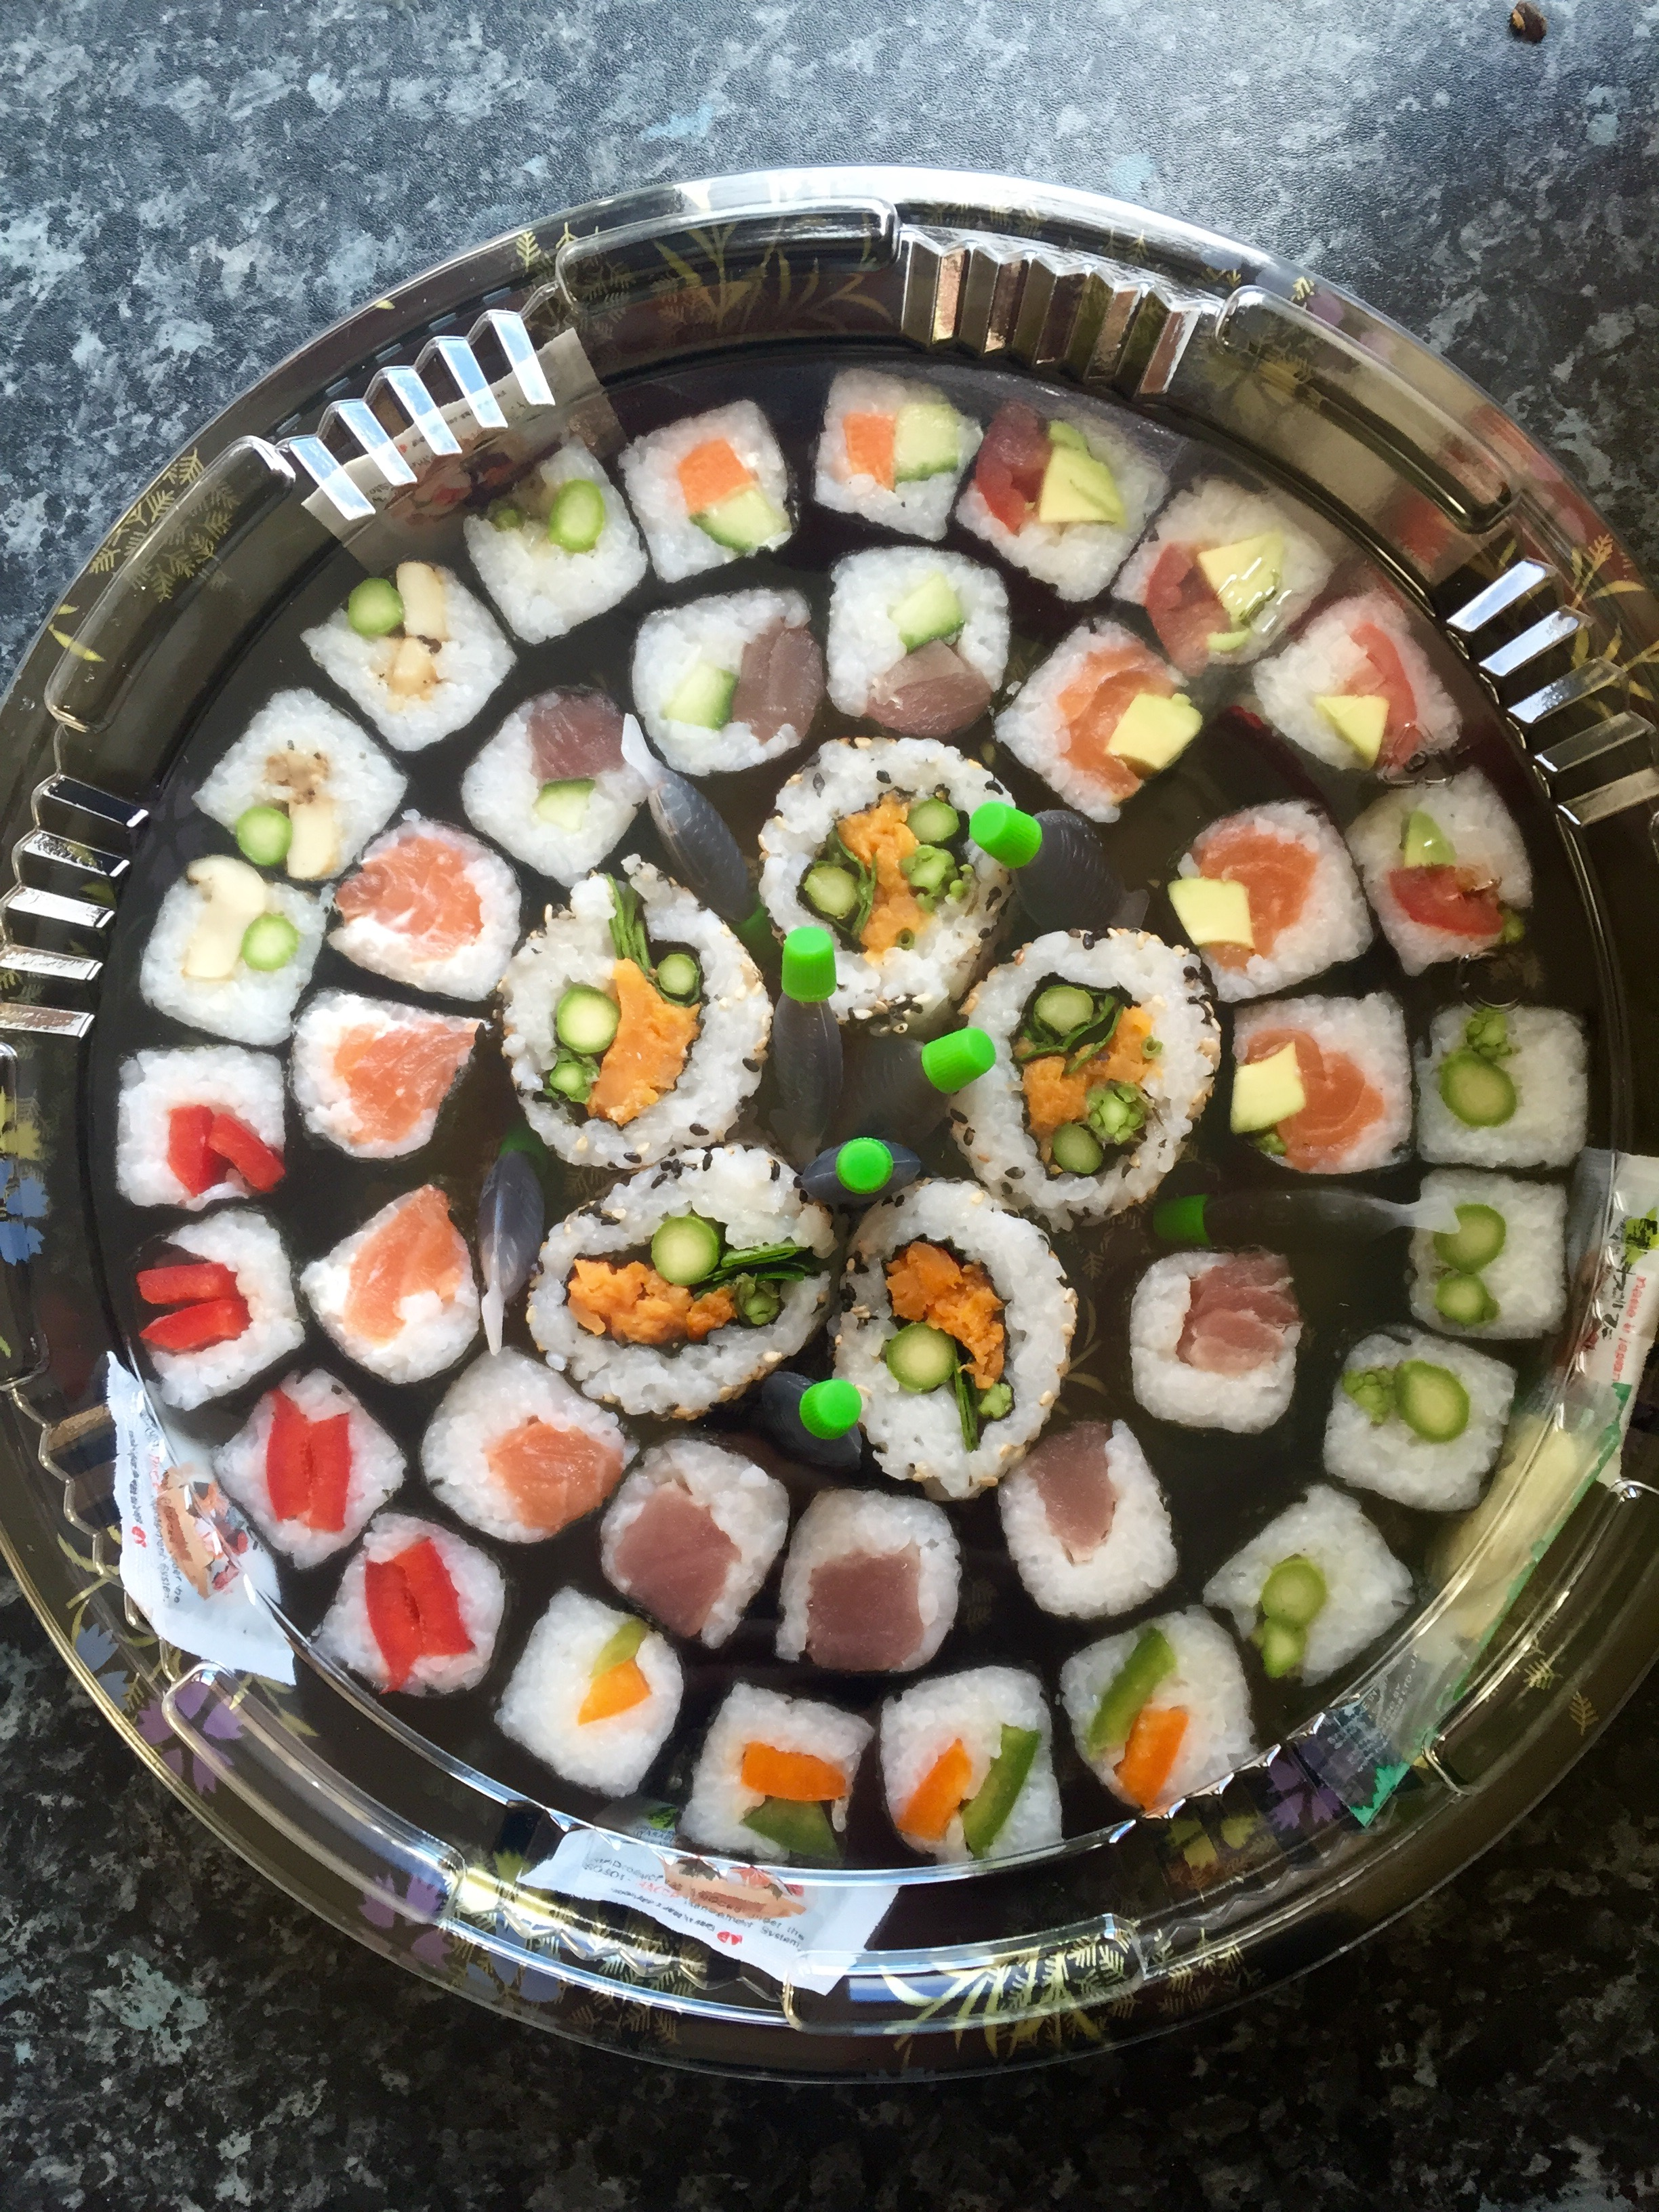 THE CLASSIC MIXED SUSHI BOX - £25   Contains a mixture of veg & fish based sushi.